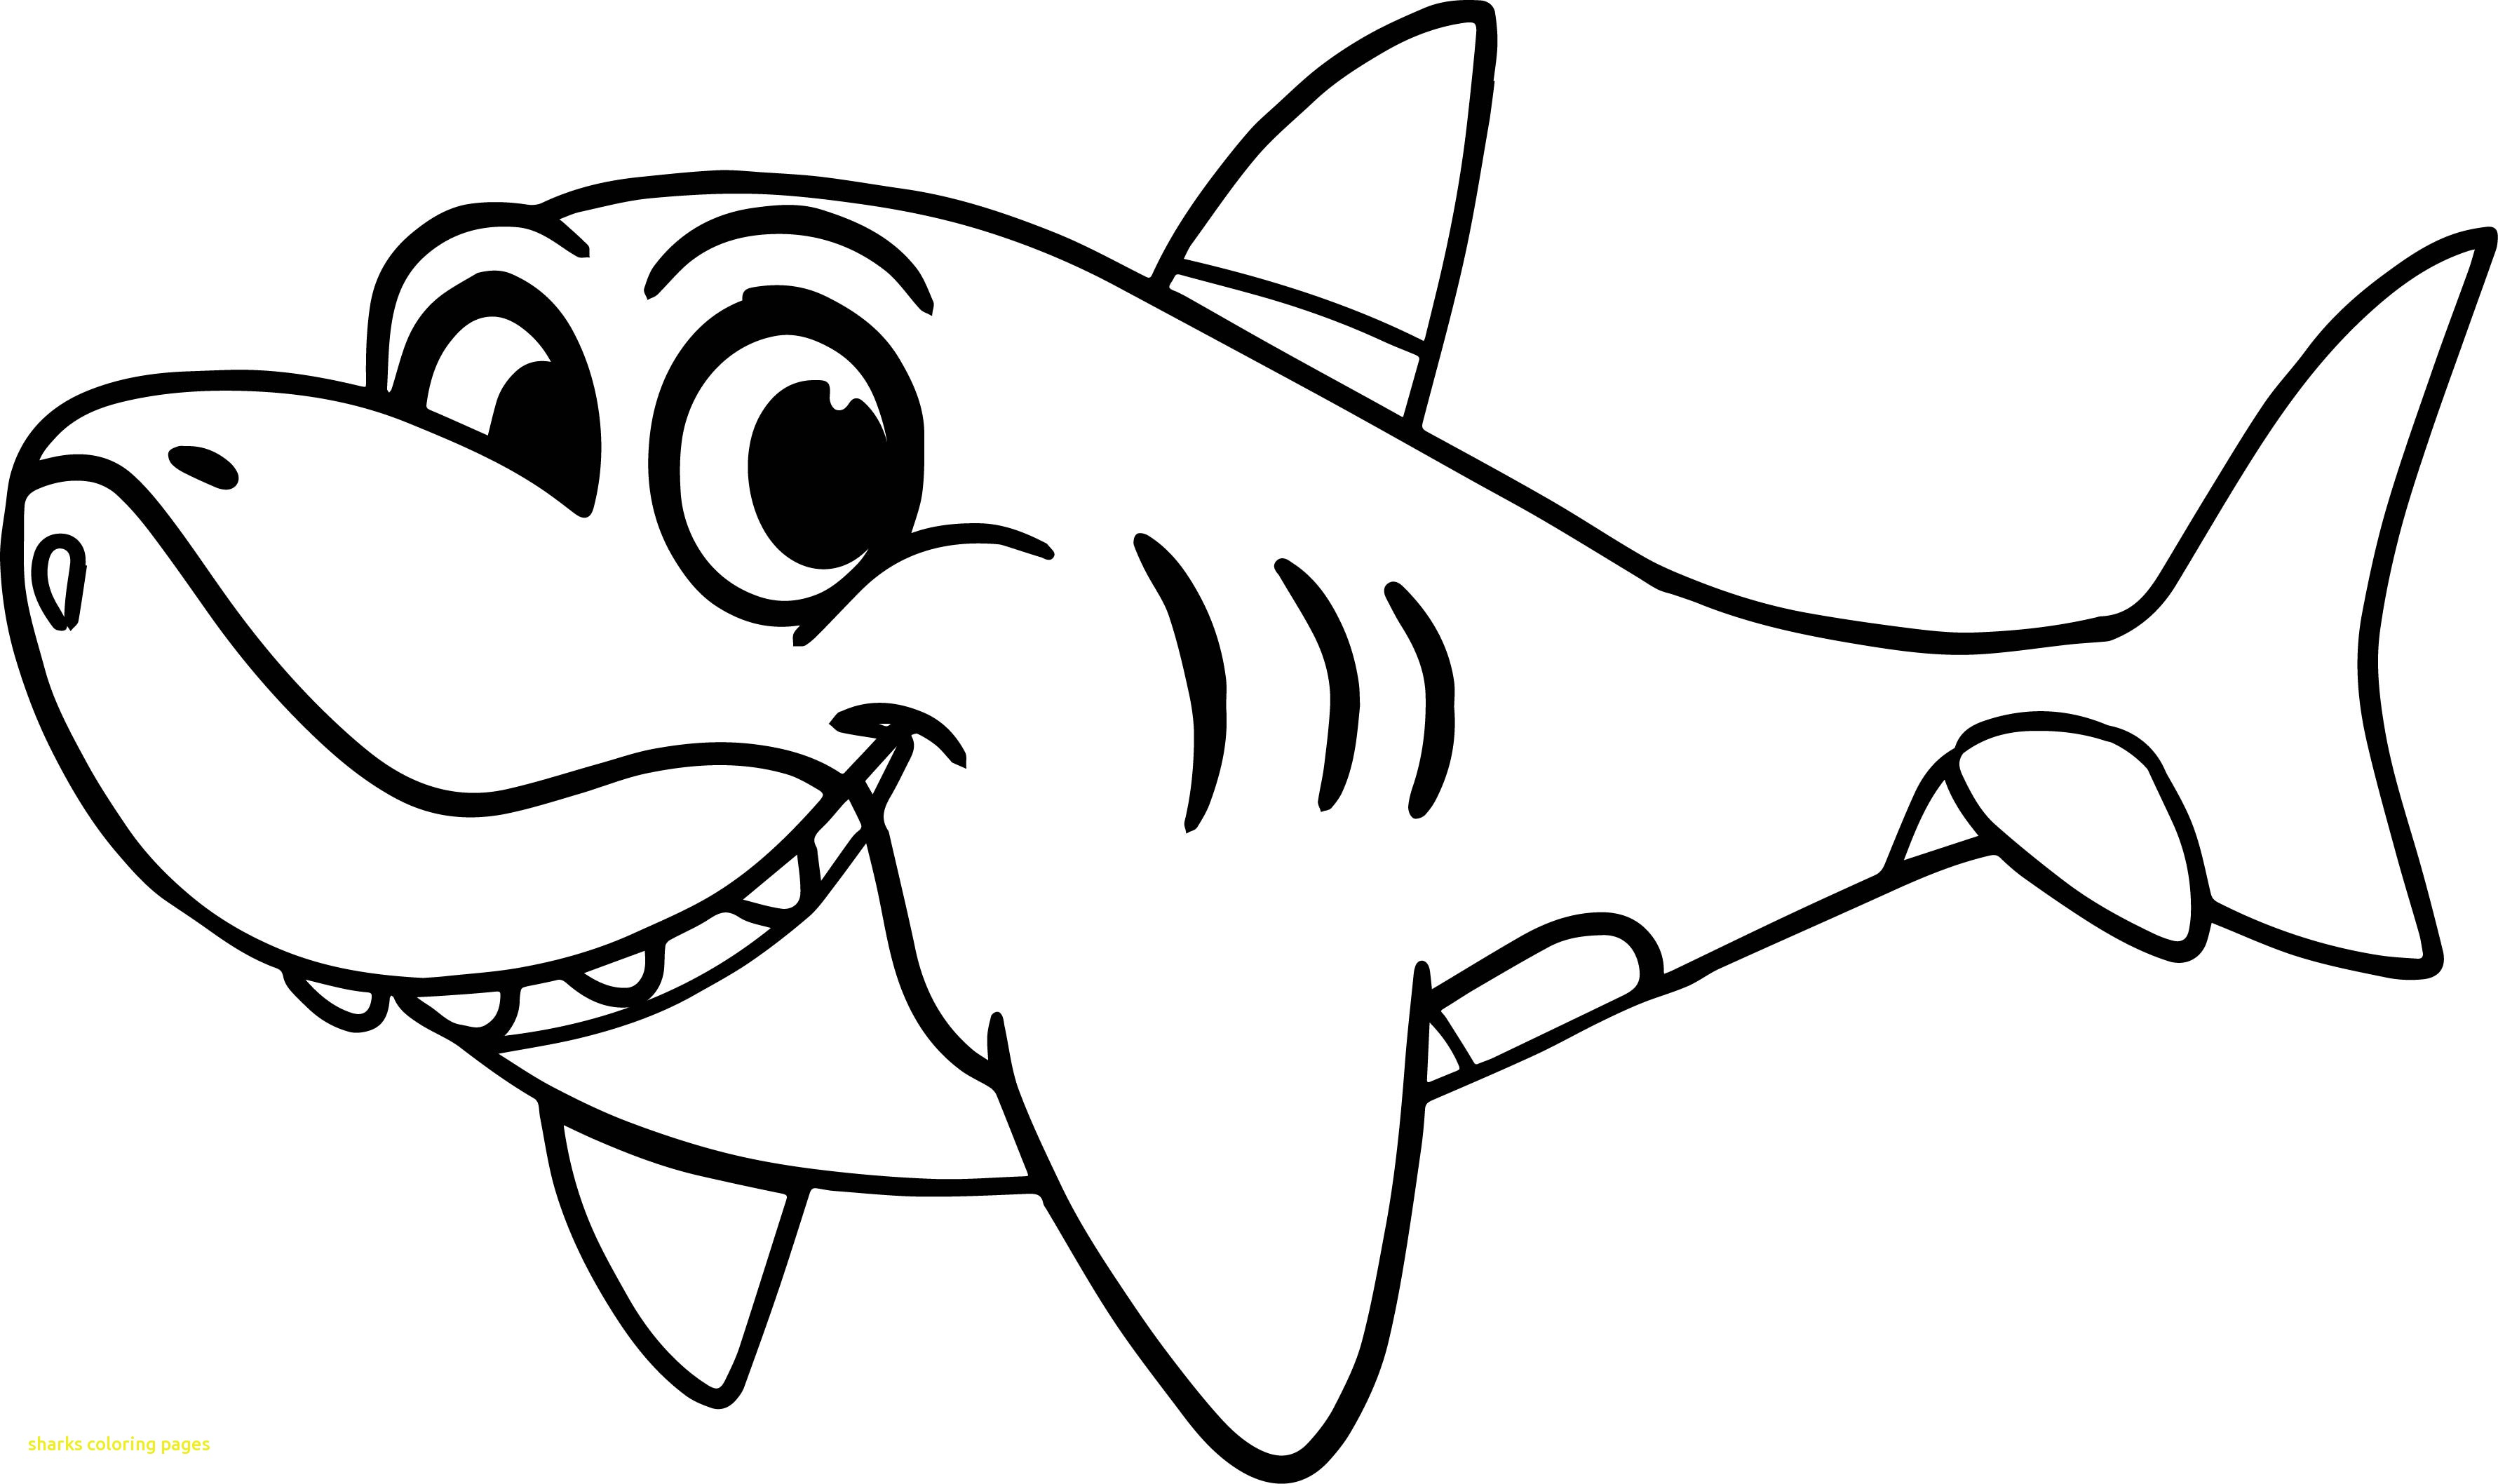 funny shark coloring pages funny shark drawing free download on clipartmag shark coloring funny pages